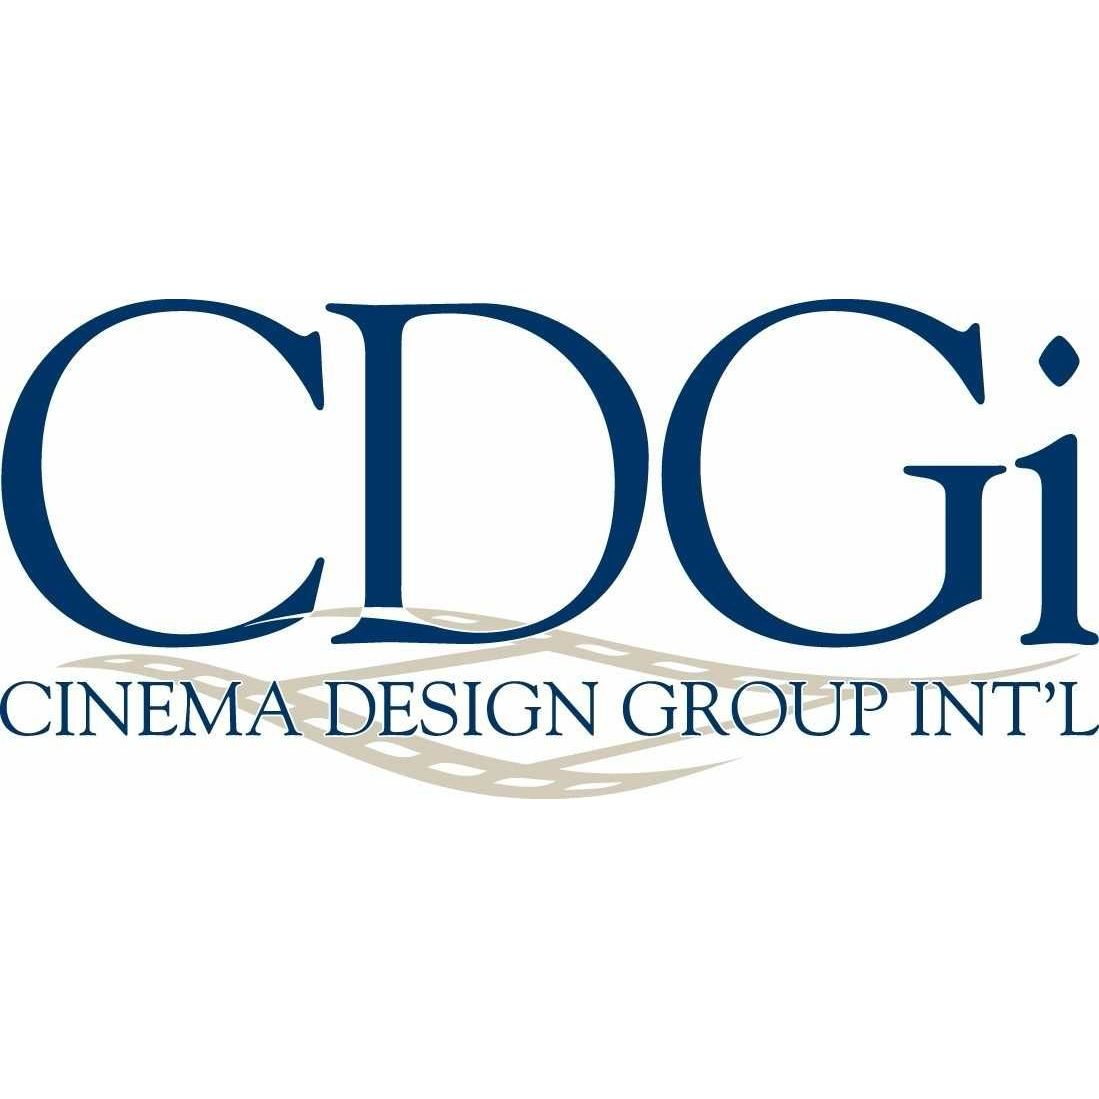 Cinema design group international in boca raton fl 33434 for International decor group